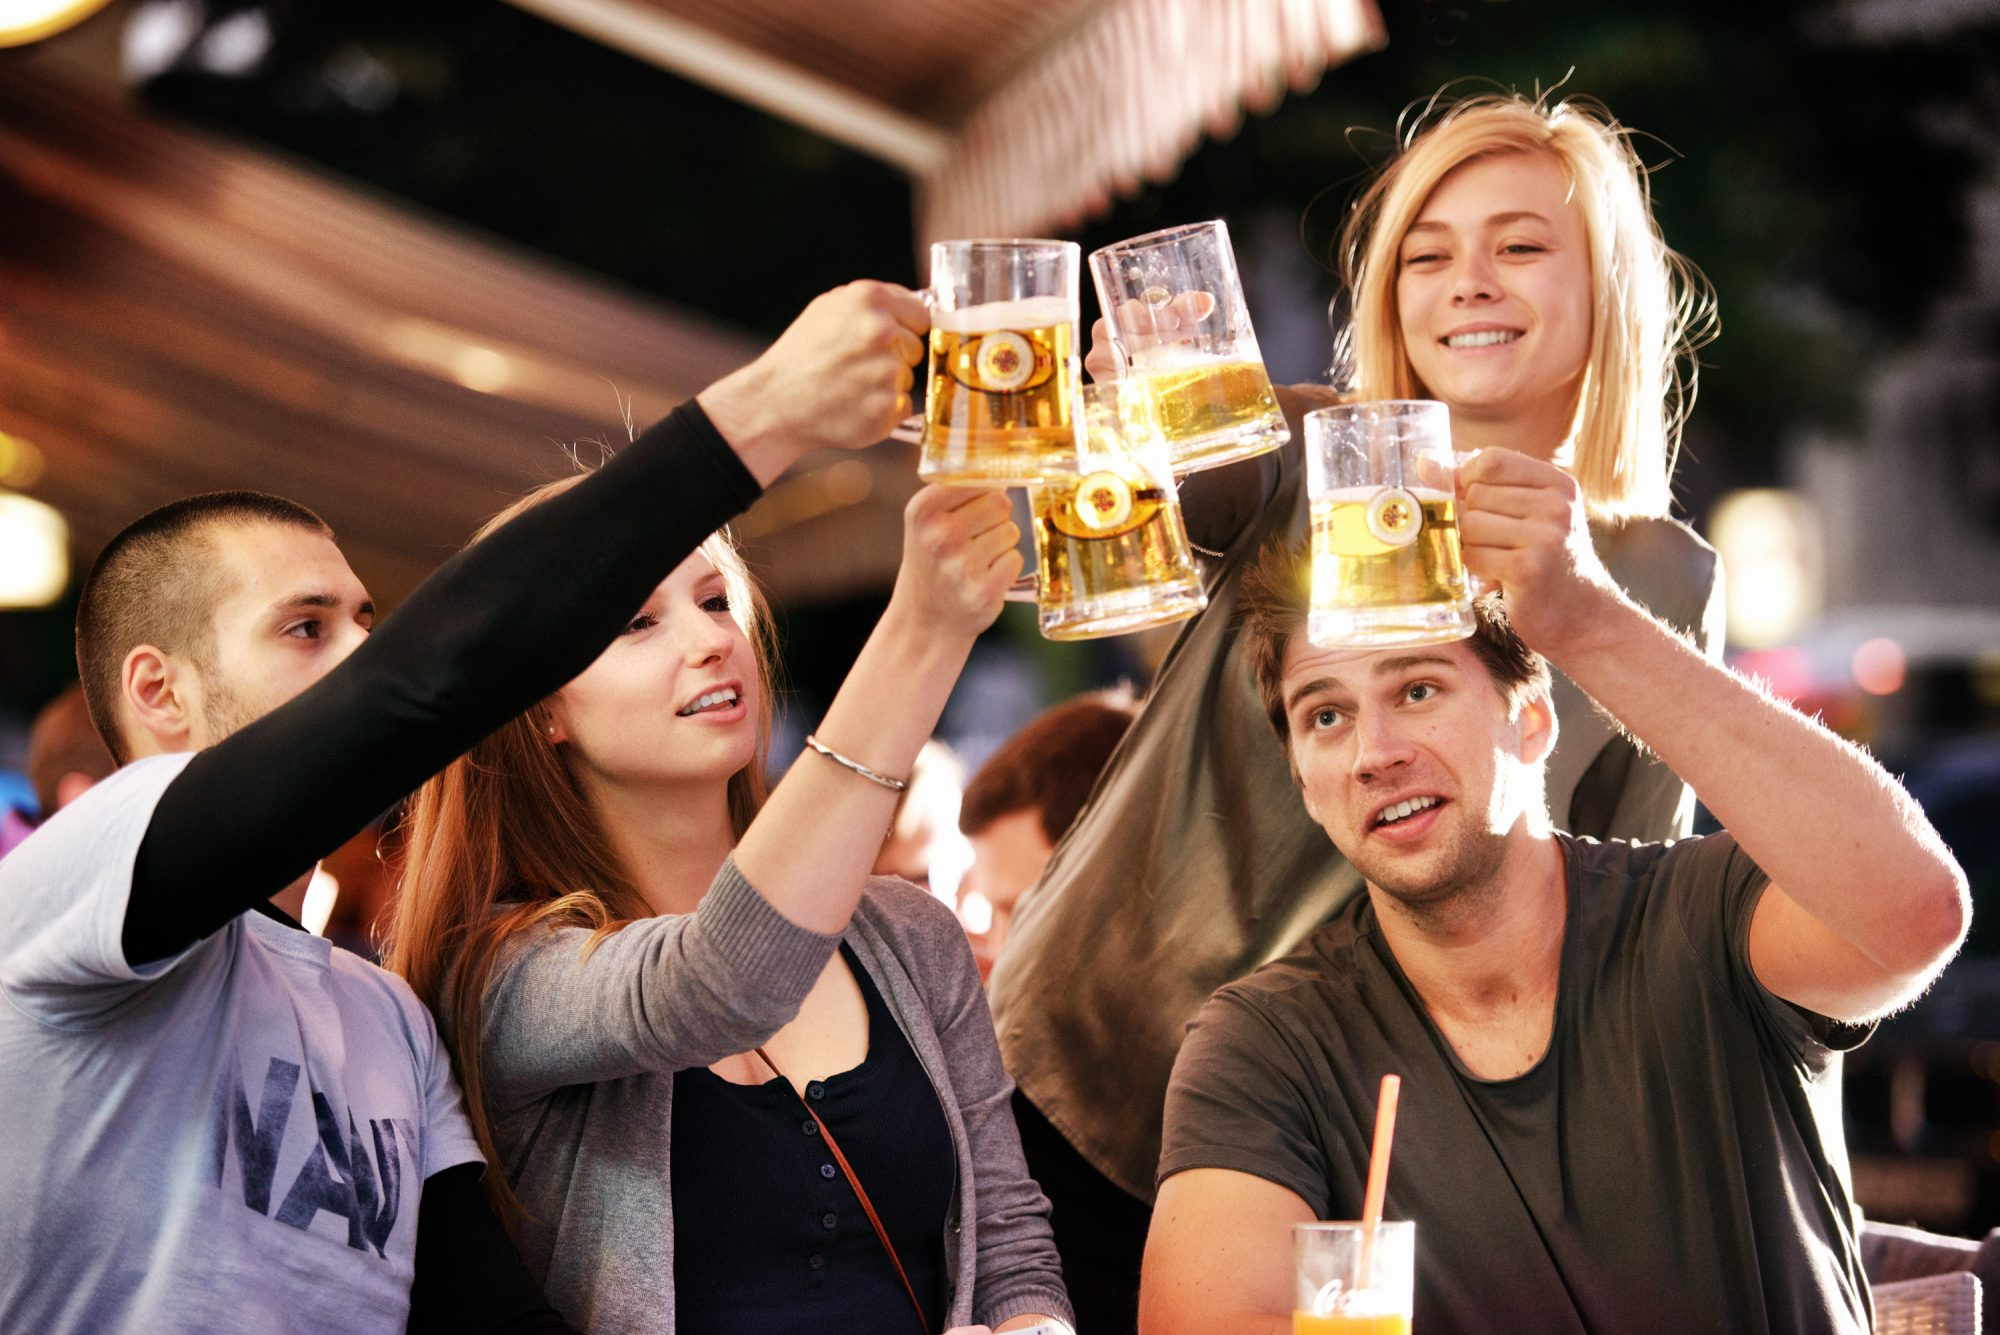 Young People Drinking Beer image